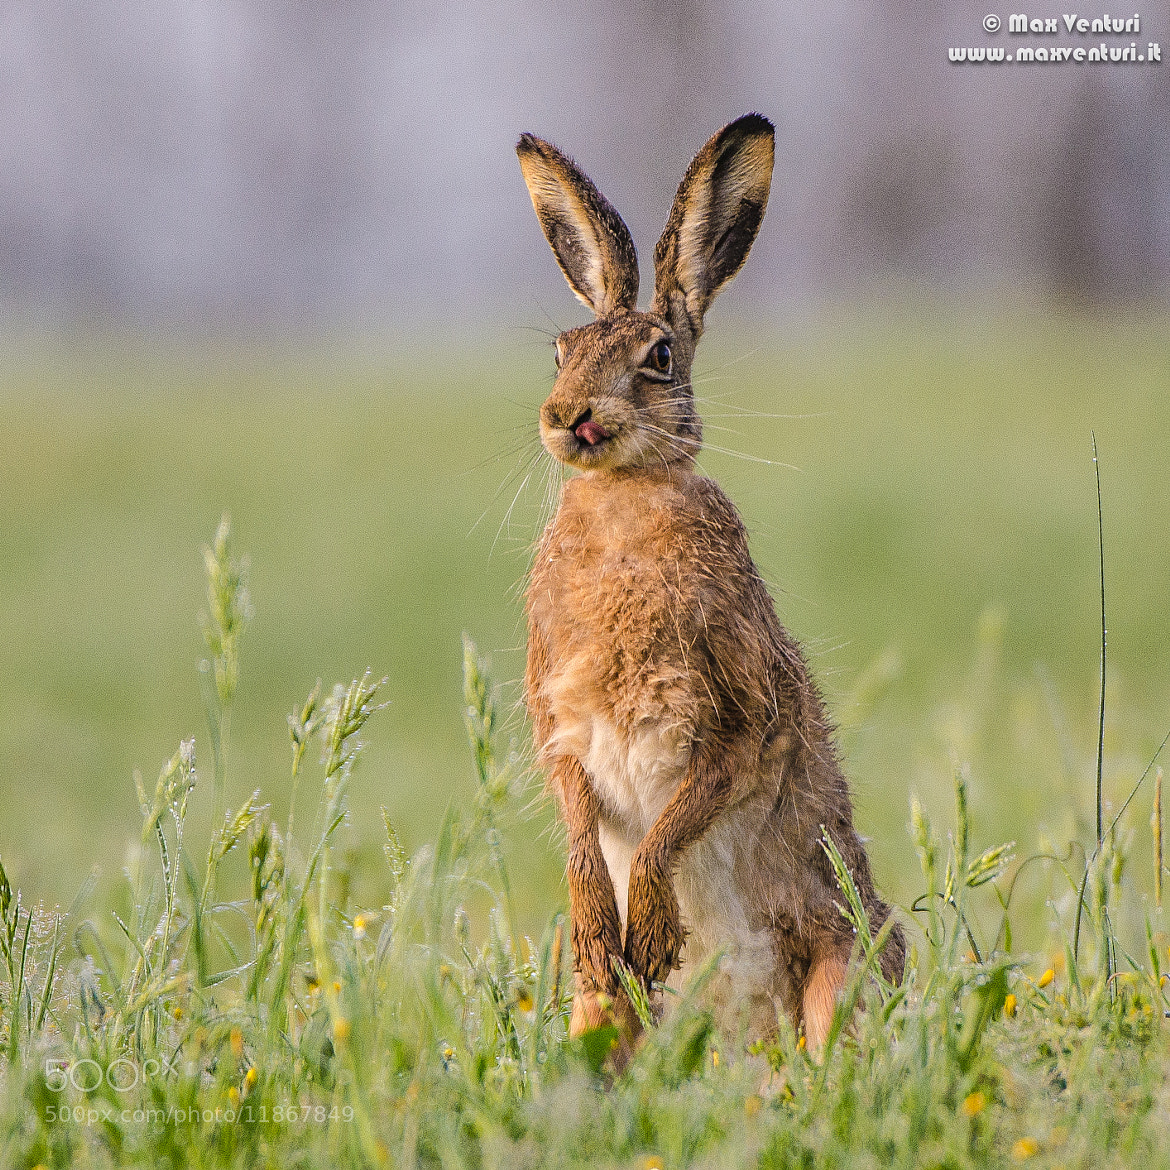 Photograph HARE by Max Venturi on 500px